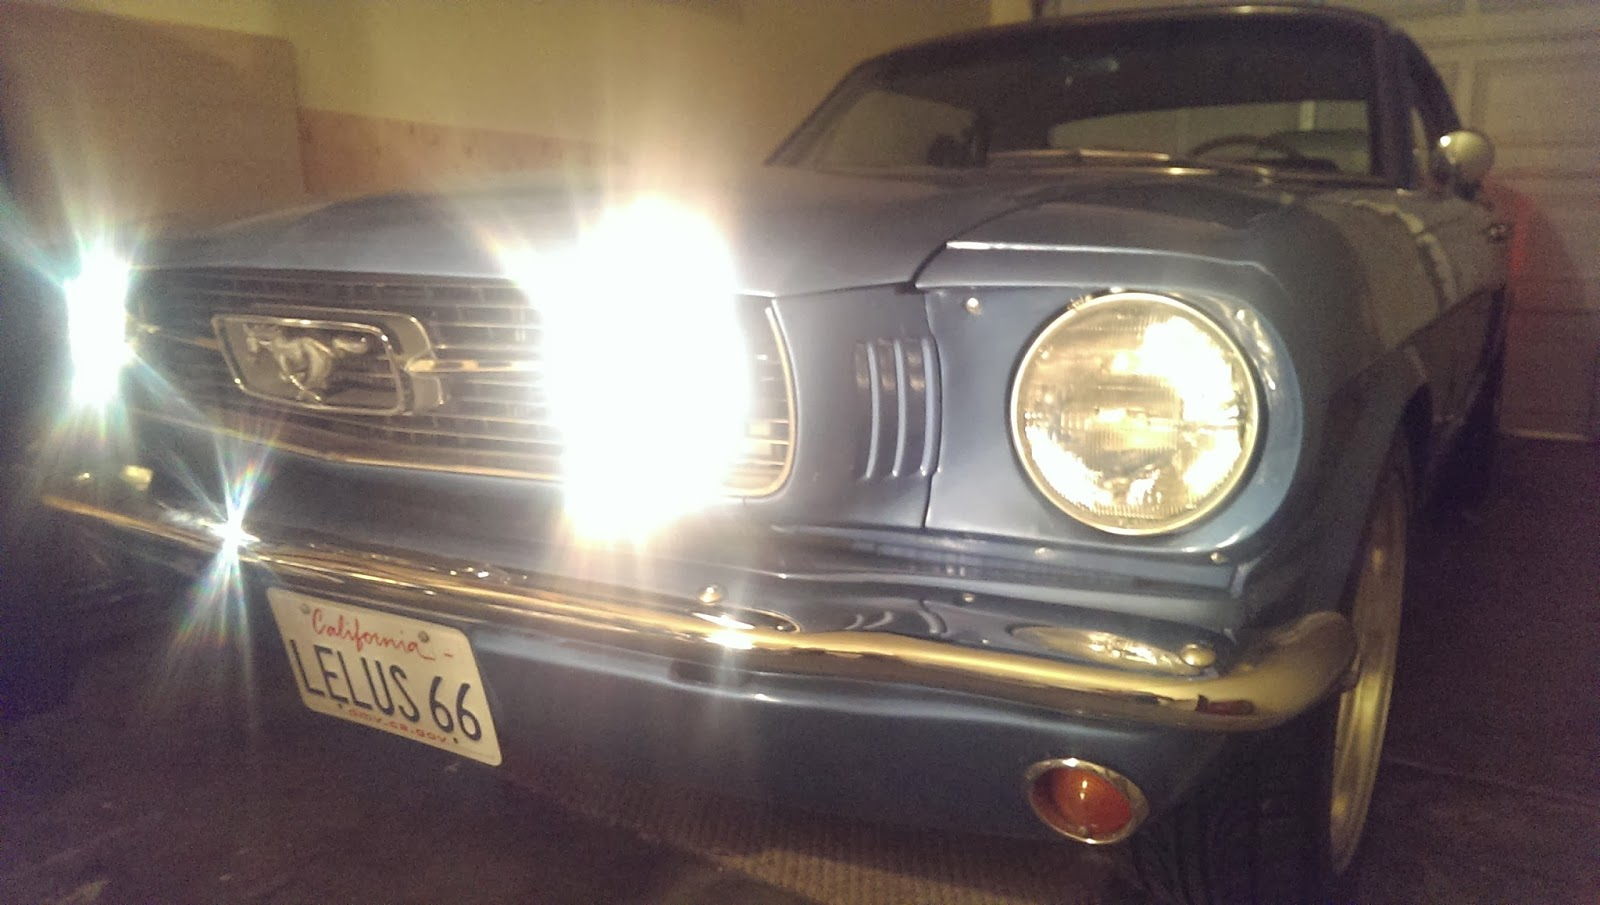 66 Mustang Fog Light Wiring Diagrams 1966 Gt Diagram Lelu S Lights Emergency Flashers Sound Dash